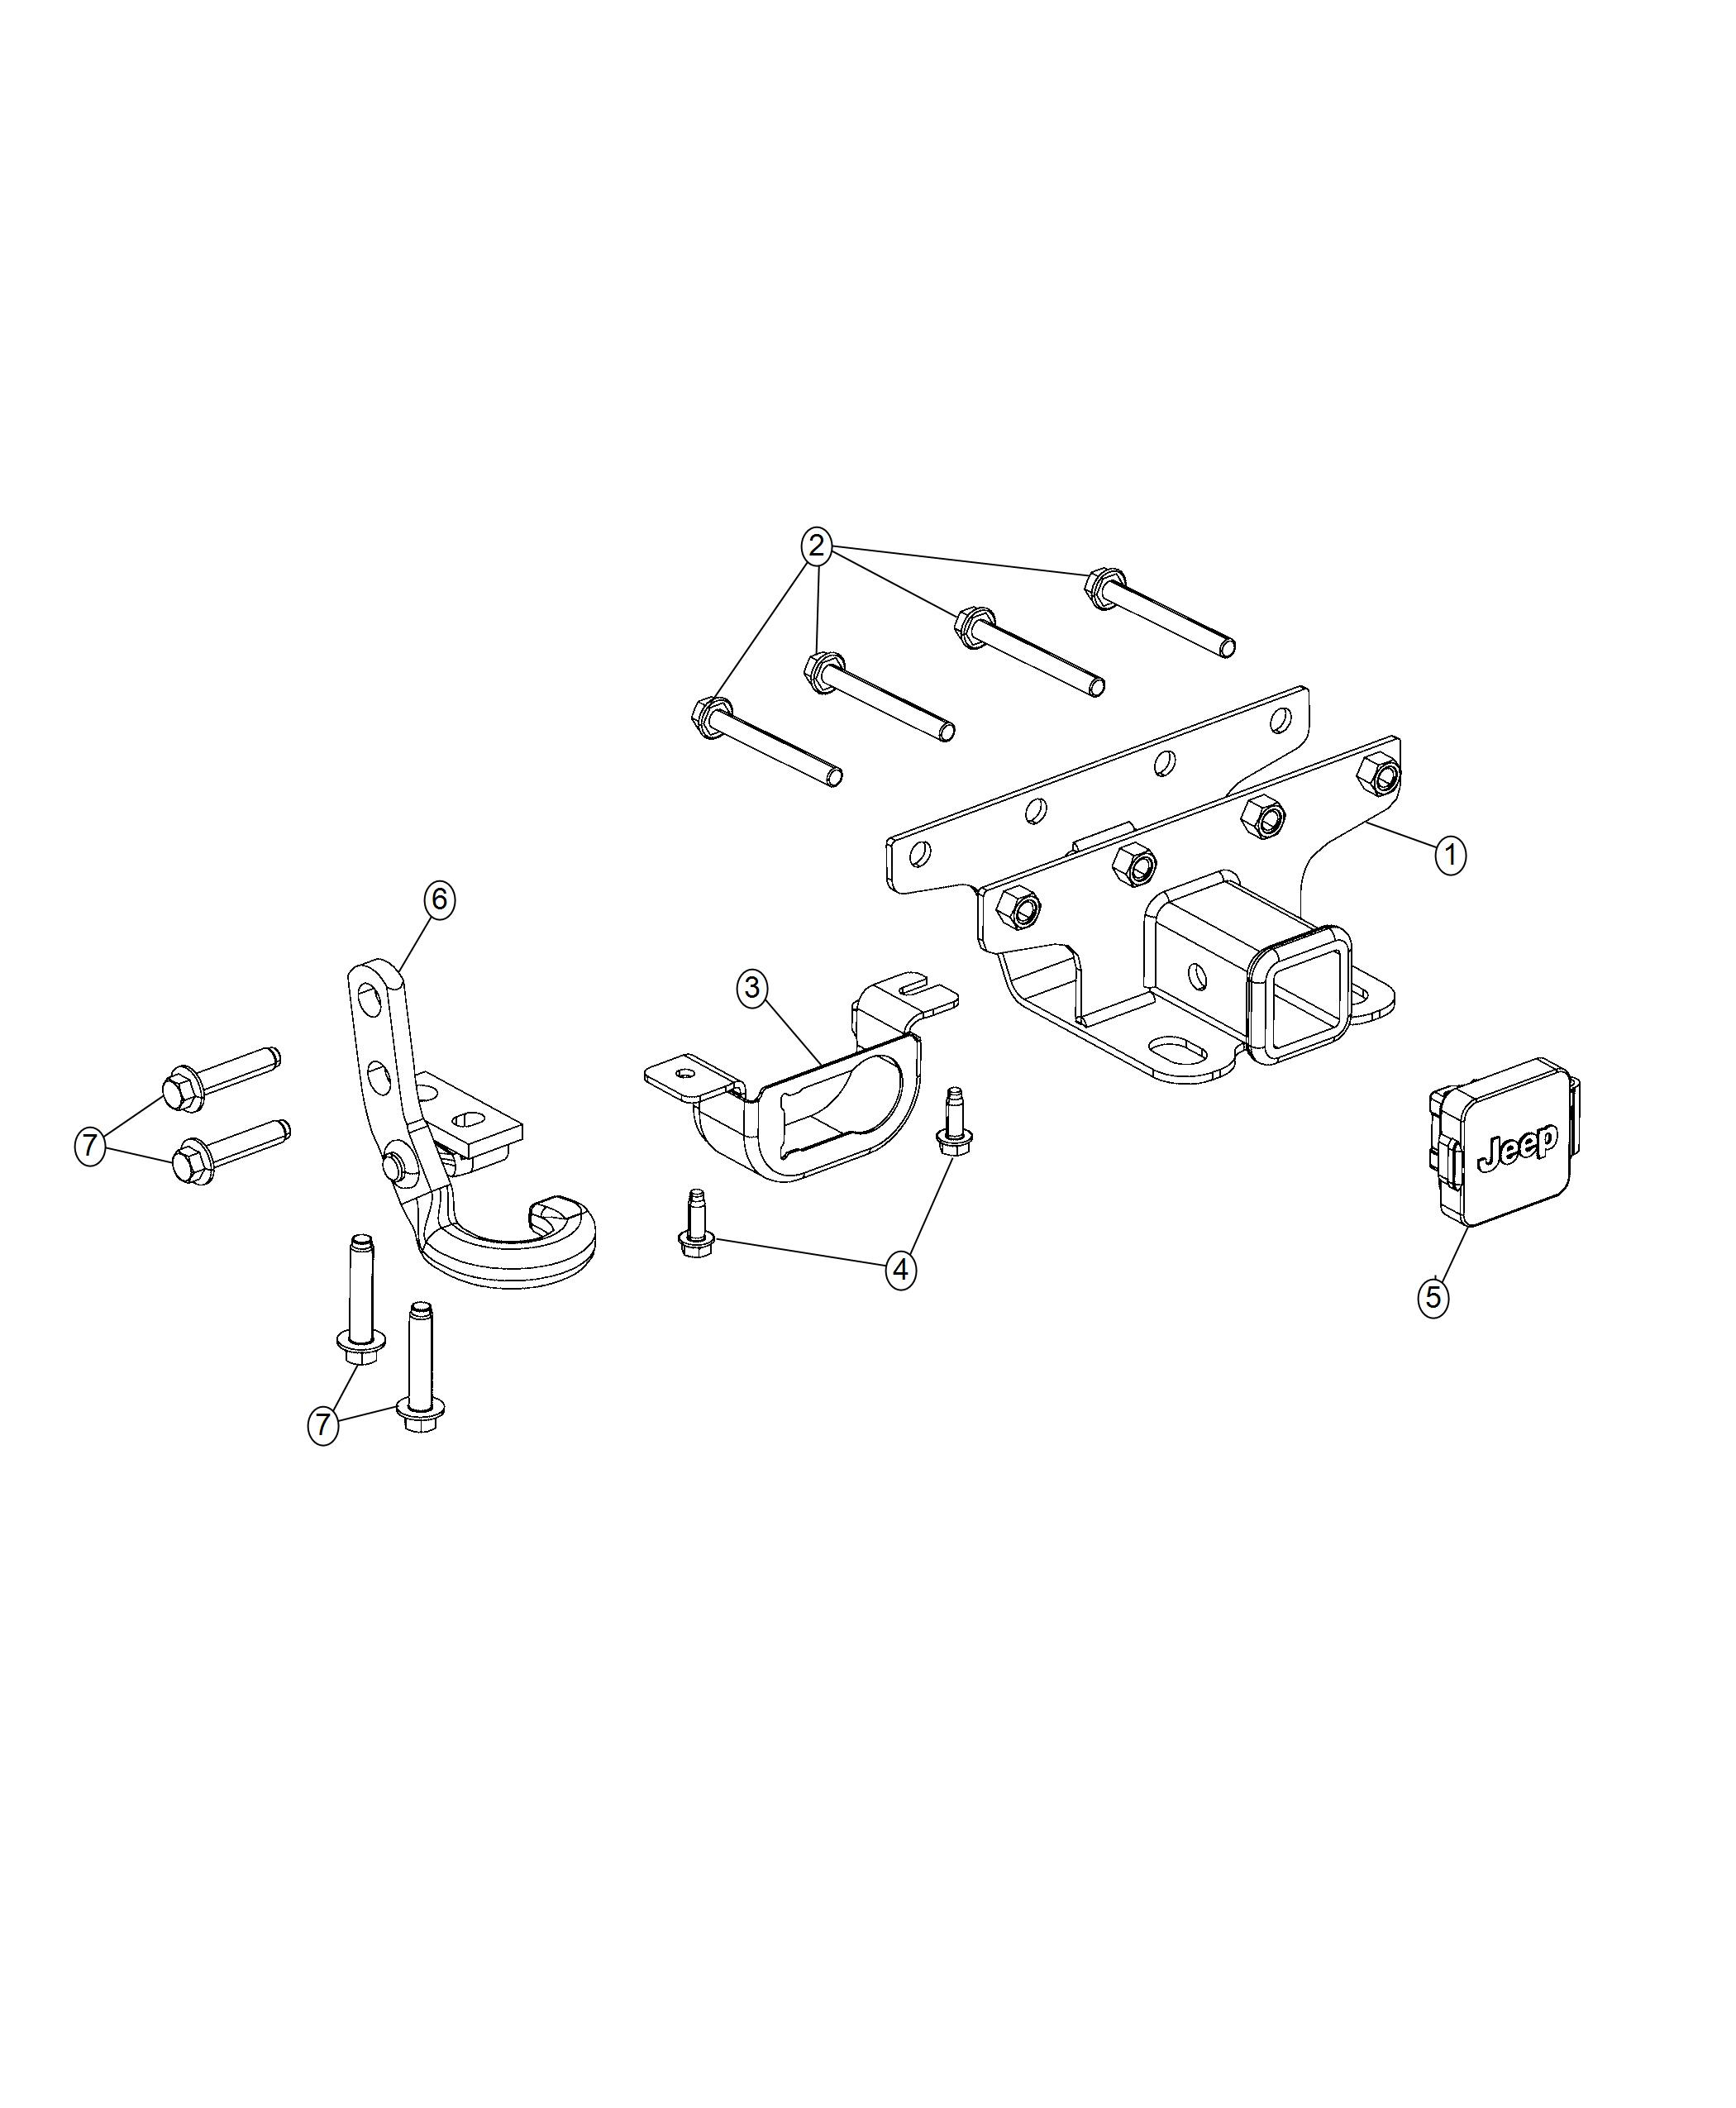 Jeep Wrangler Receiver Kit Trailer Tow Injection